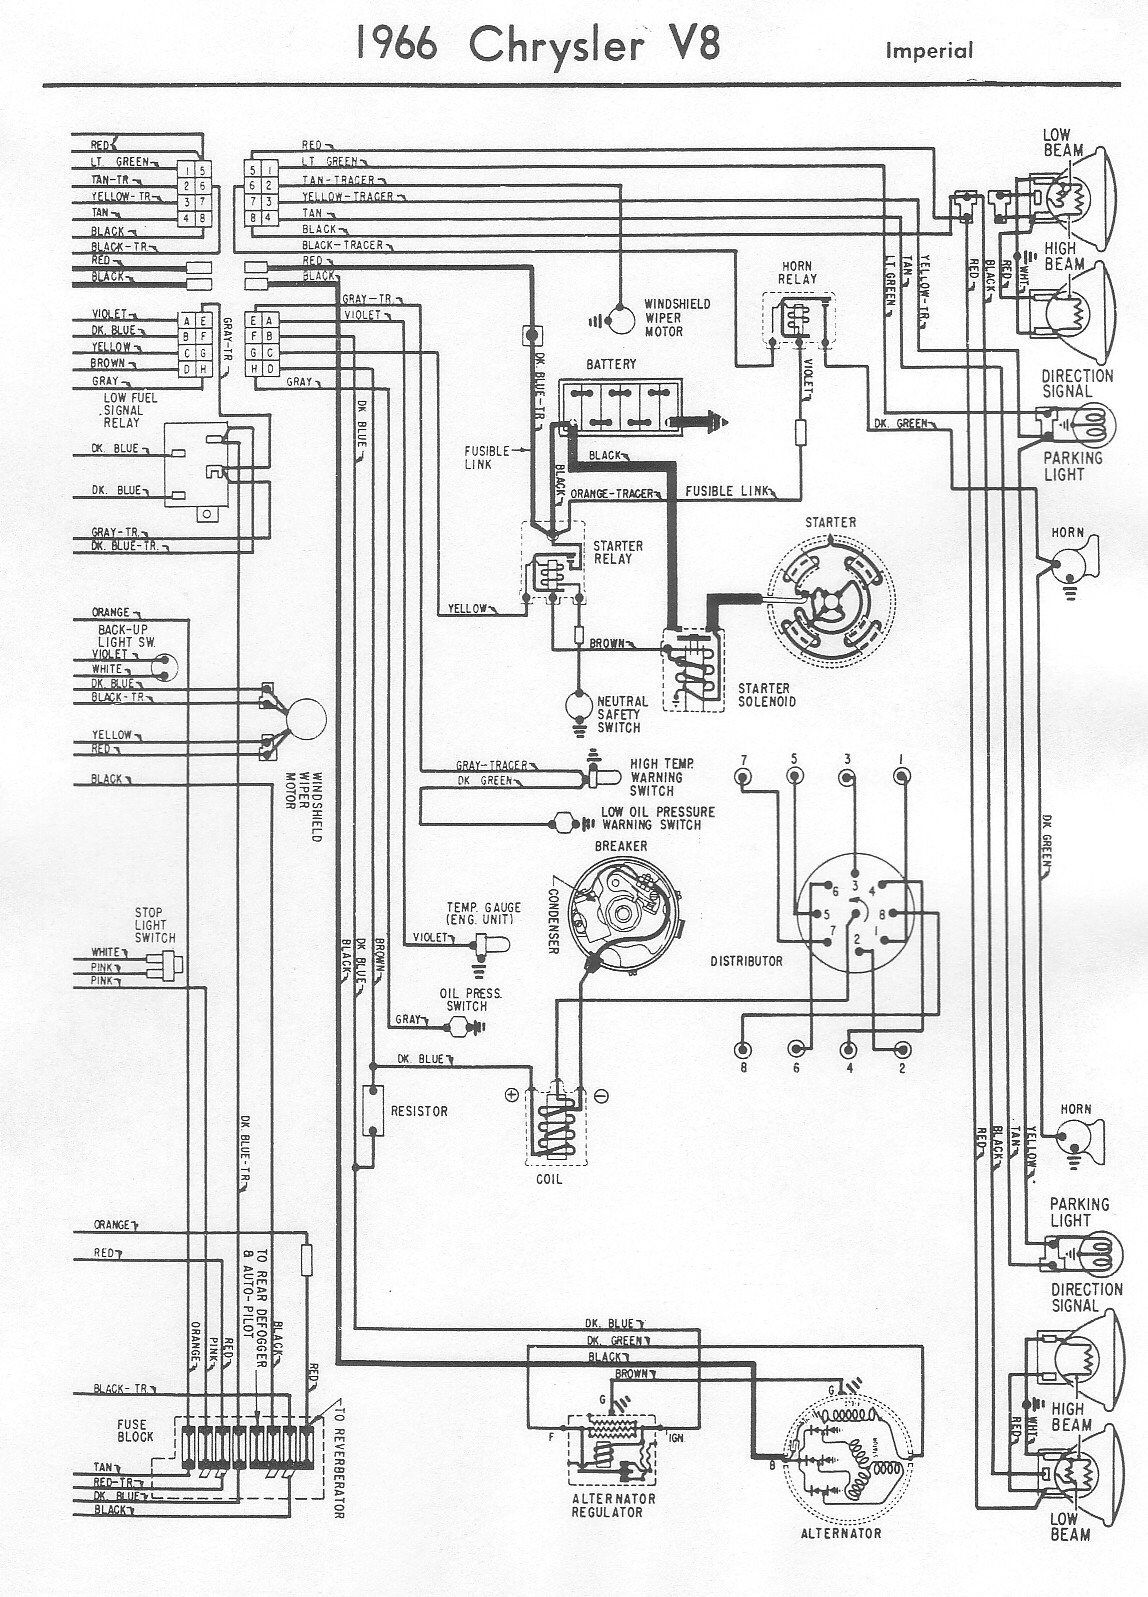 1970 Cadillac Wiring Harness Diagram Trusted Challenger Engine Compartment Circuit 1948